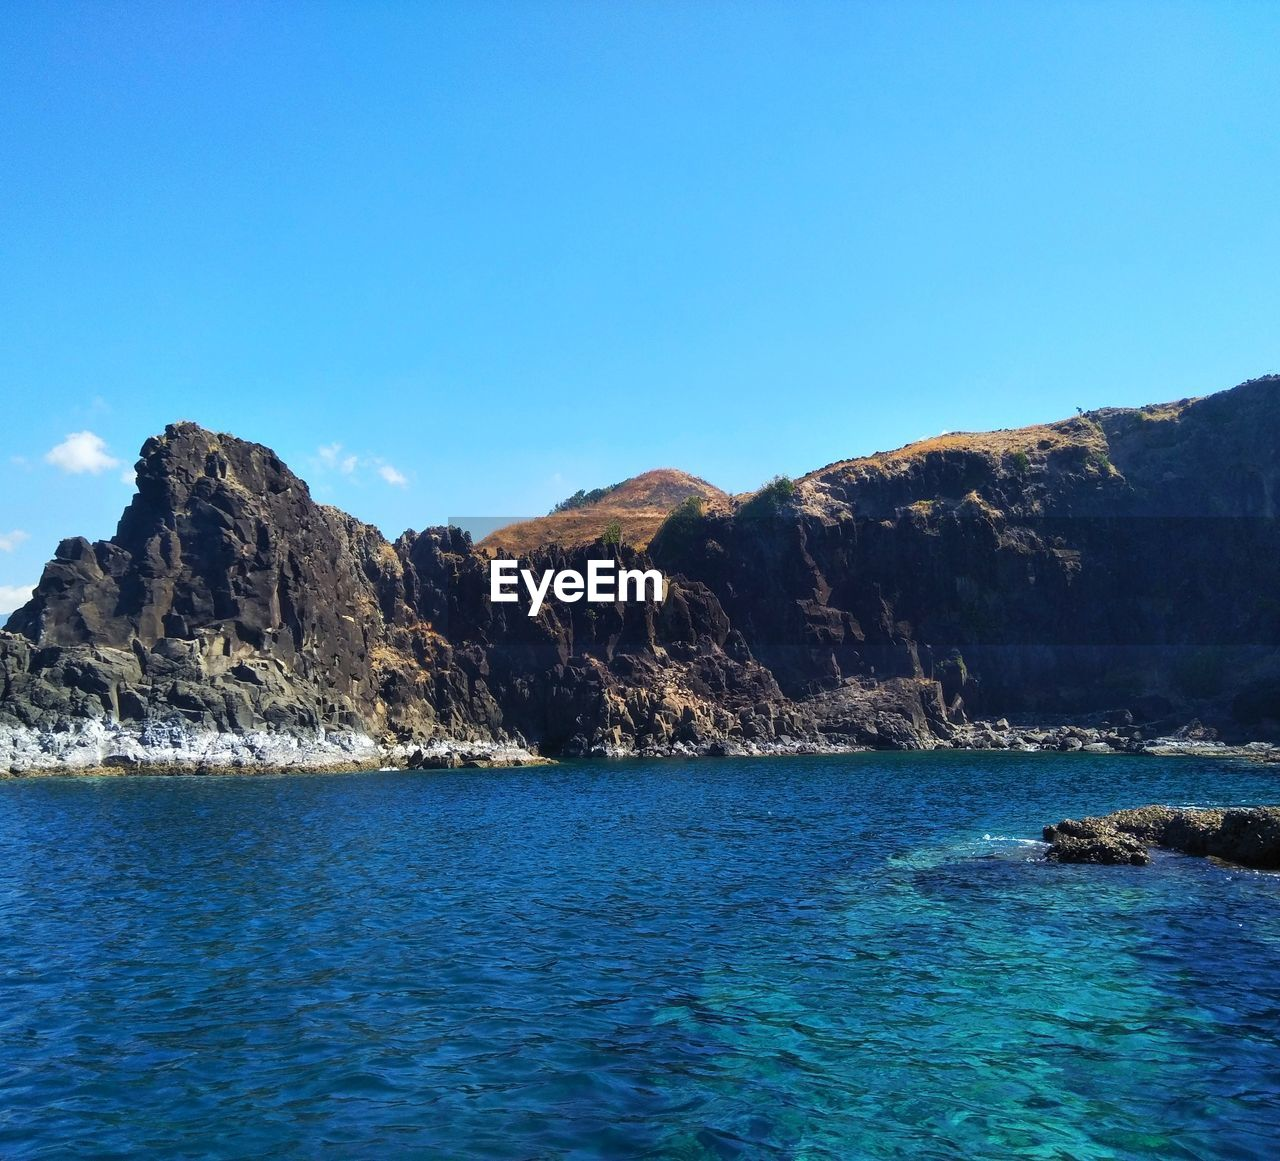 water, sky, sea, mountain, beauty in nature, blue, scenics - nature, nature, tranquility, waterfront, tranquil scene, rock, clear sky, copy space, no people, day, outdoors, idyllic, environment, formation, turquoise colored, view into land